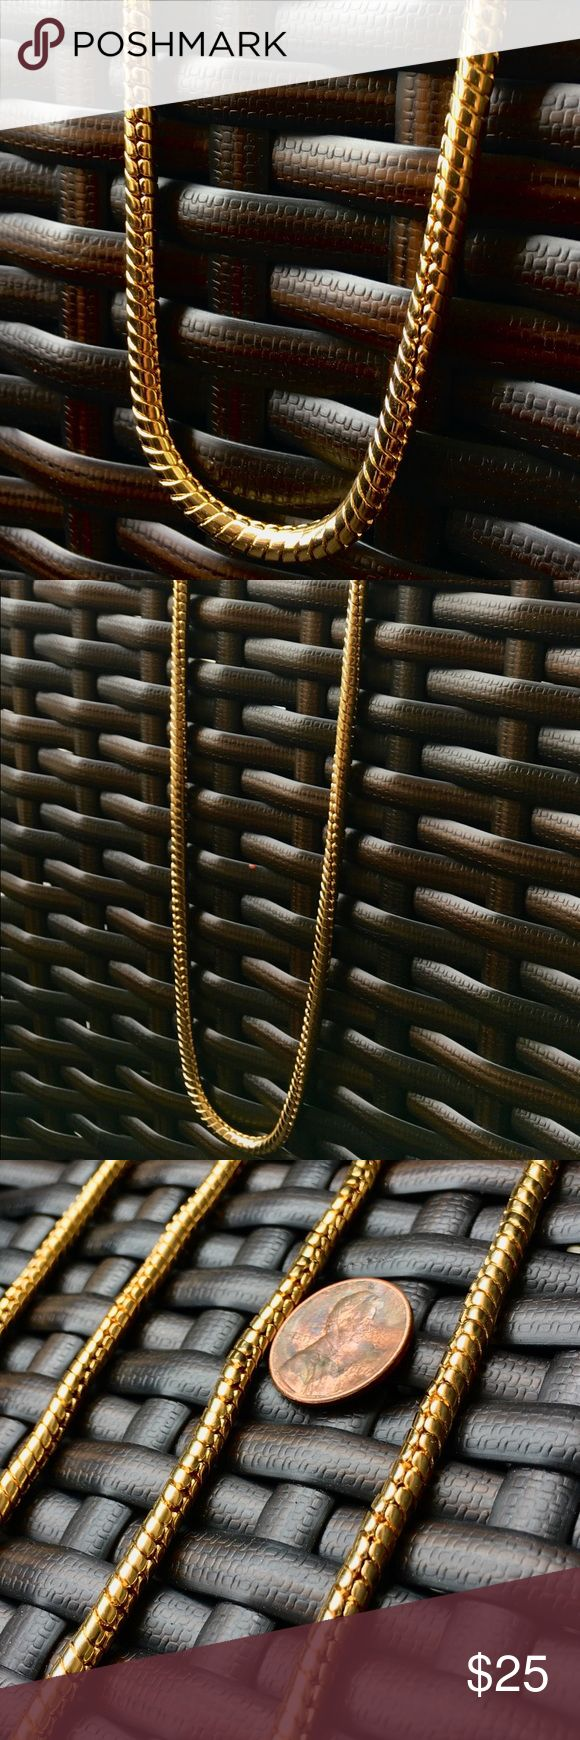 New 14k Gold Finish Long Rope Chain Brand new never worn before. Men's Rope Gold Chain. 14k Gold plated Stainless steel. A must for the summer and vacation! 36 inches in length and 10mm thick! Accessories Jewelry